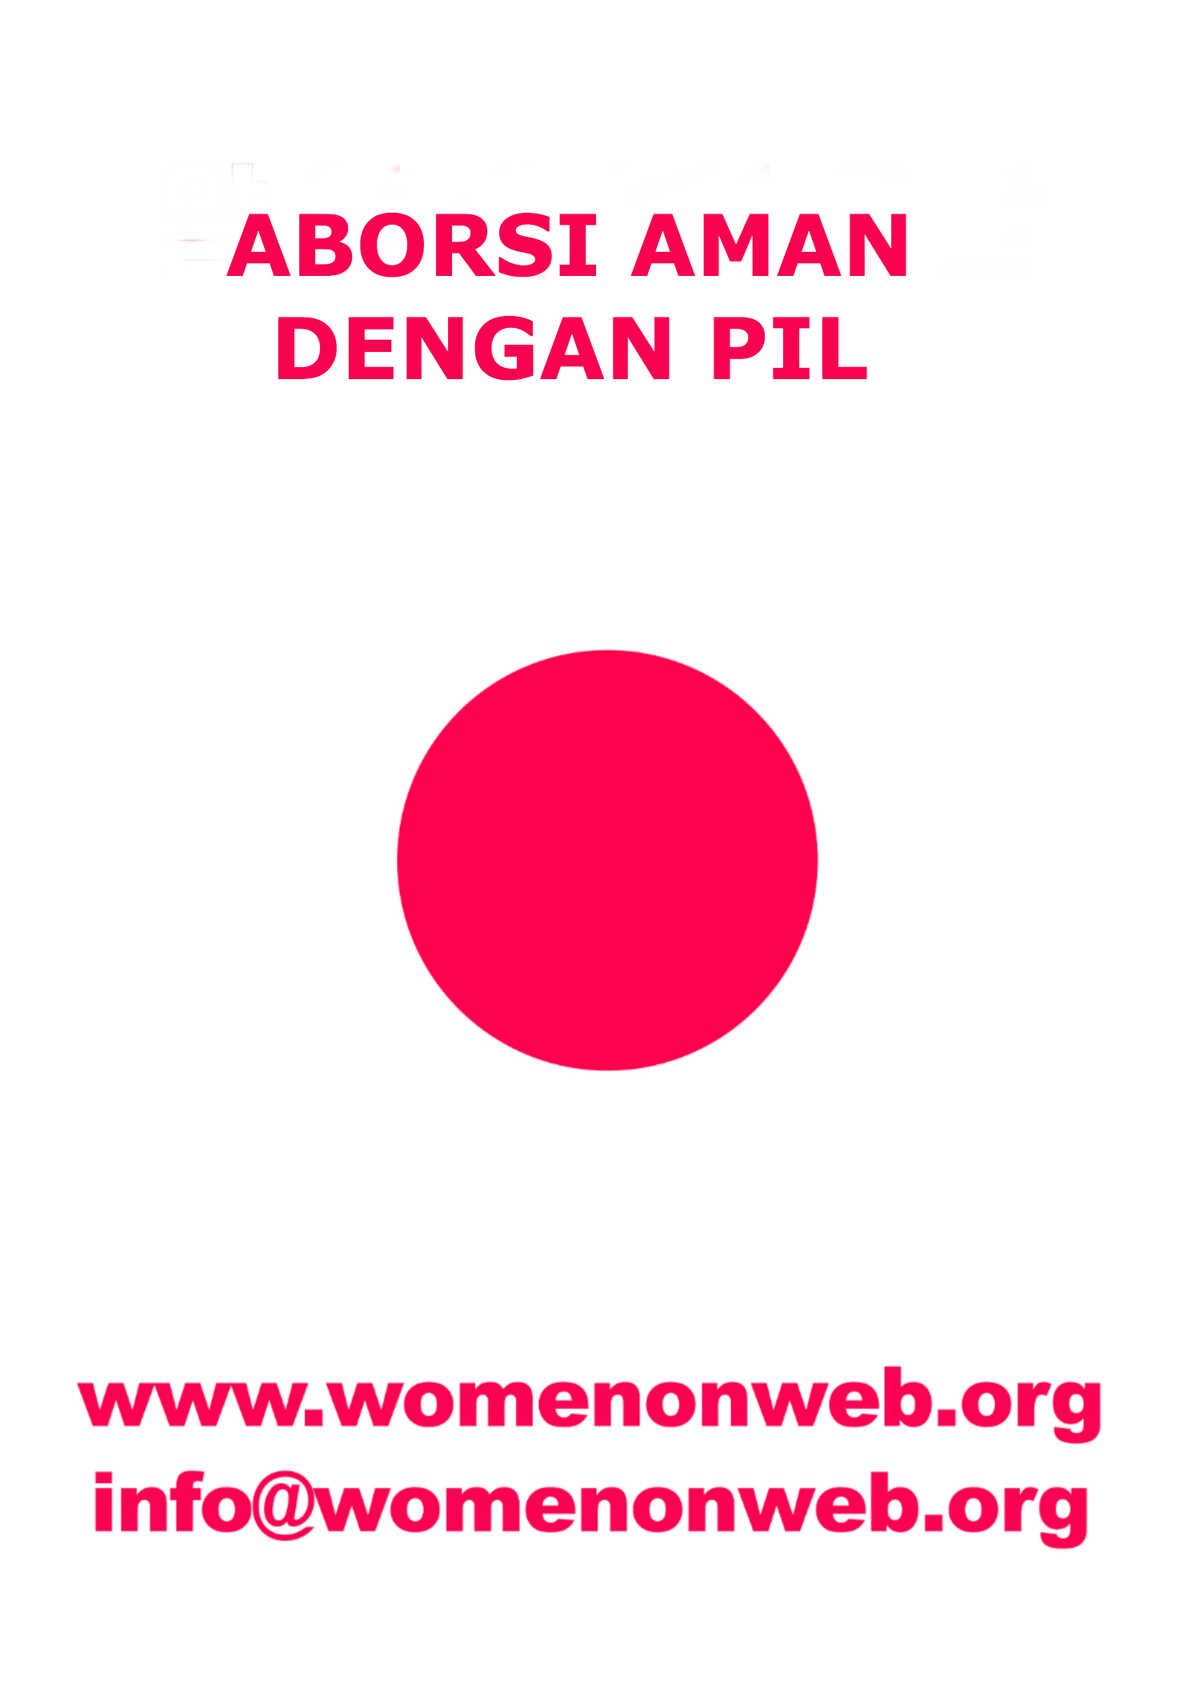 Women on Web sticker Bahasa Indonesia